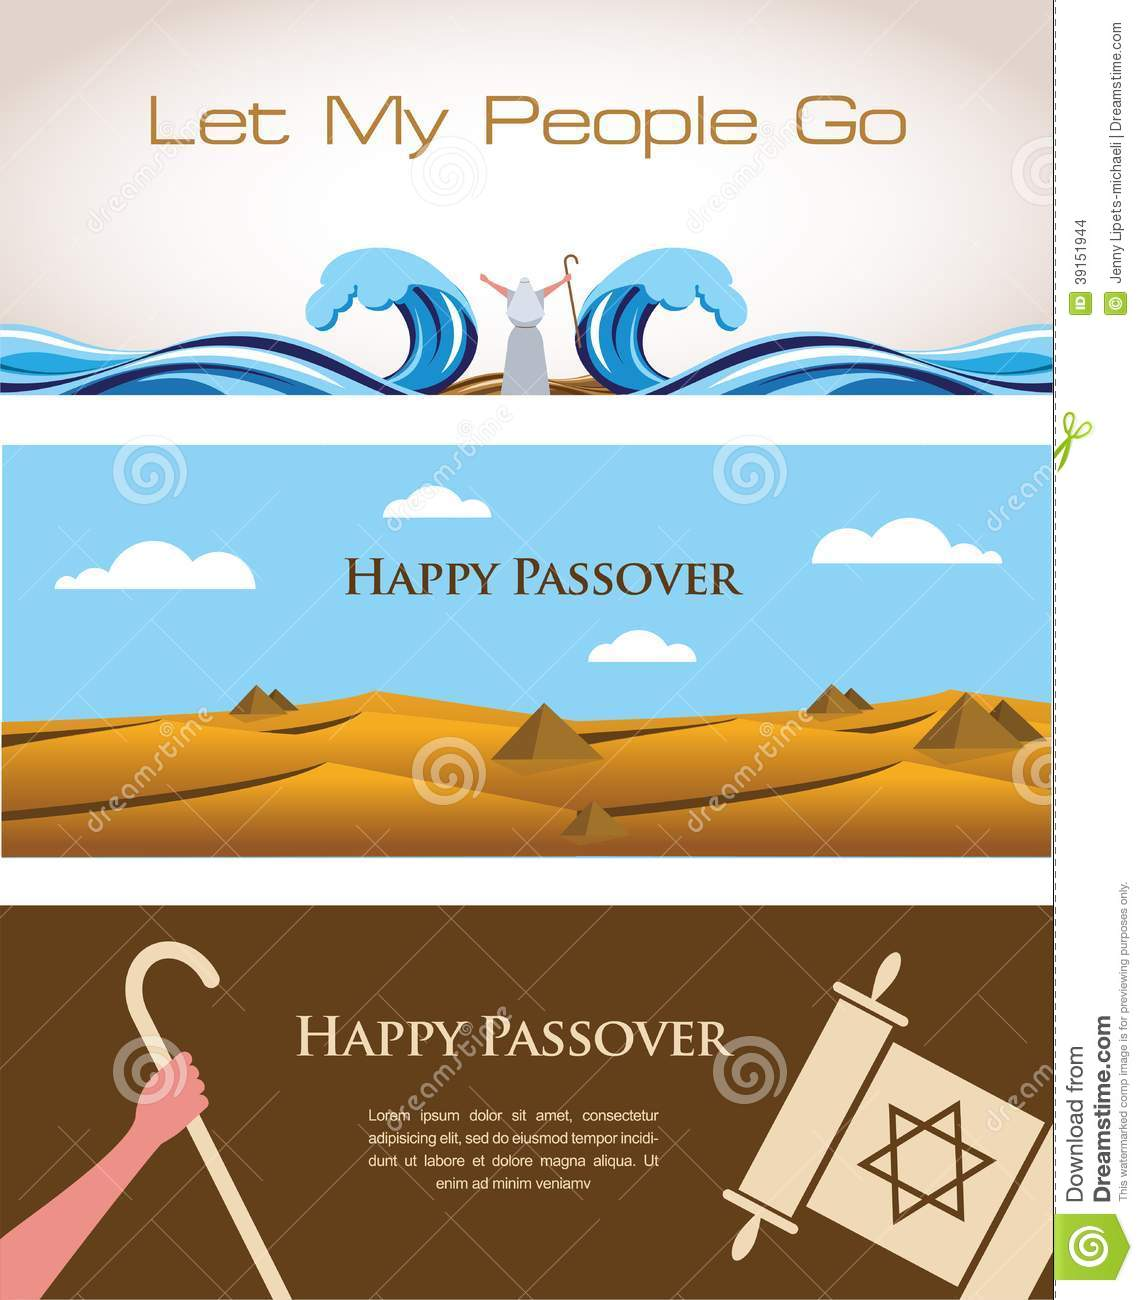 3 Tools and Tips for Passover